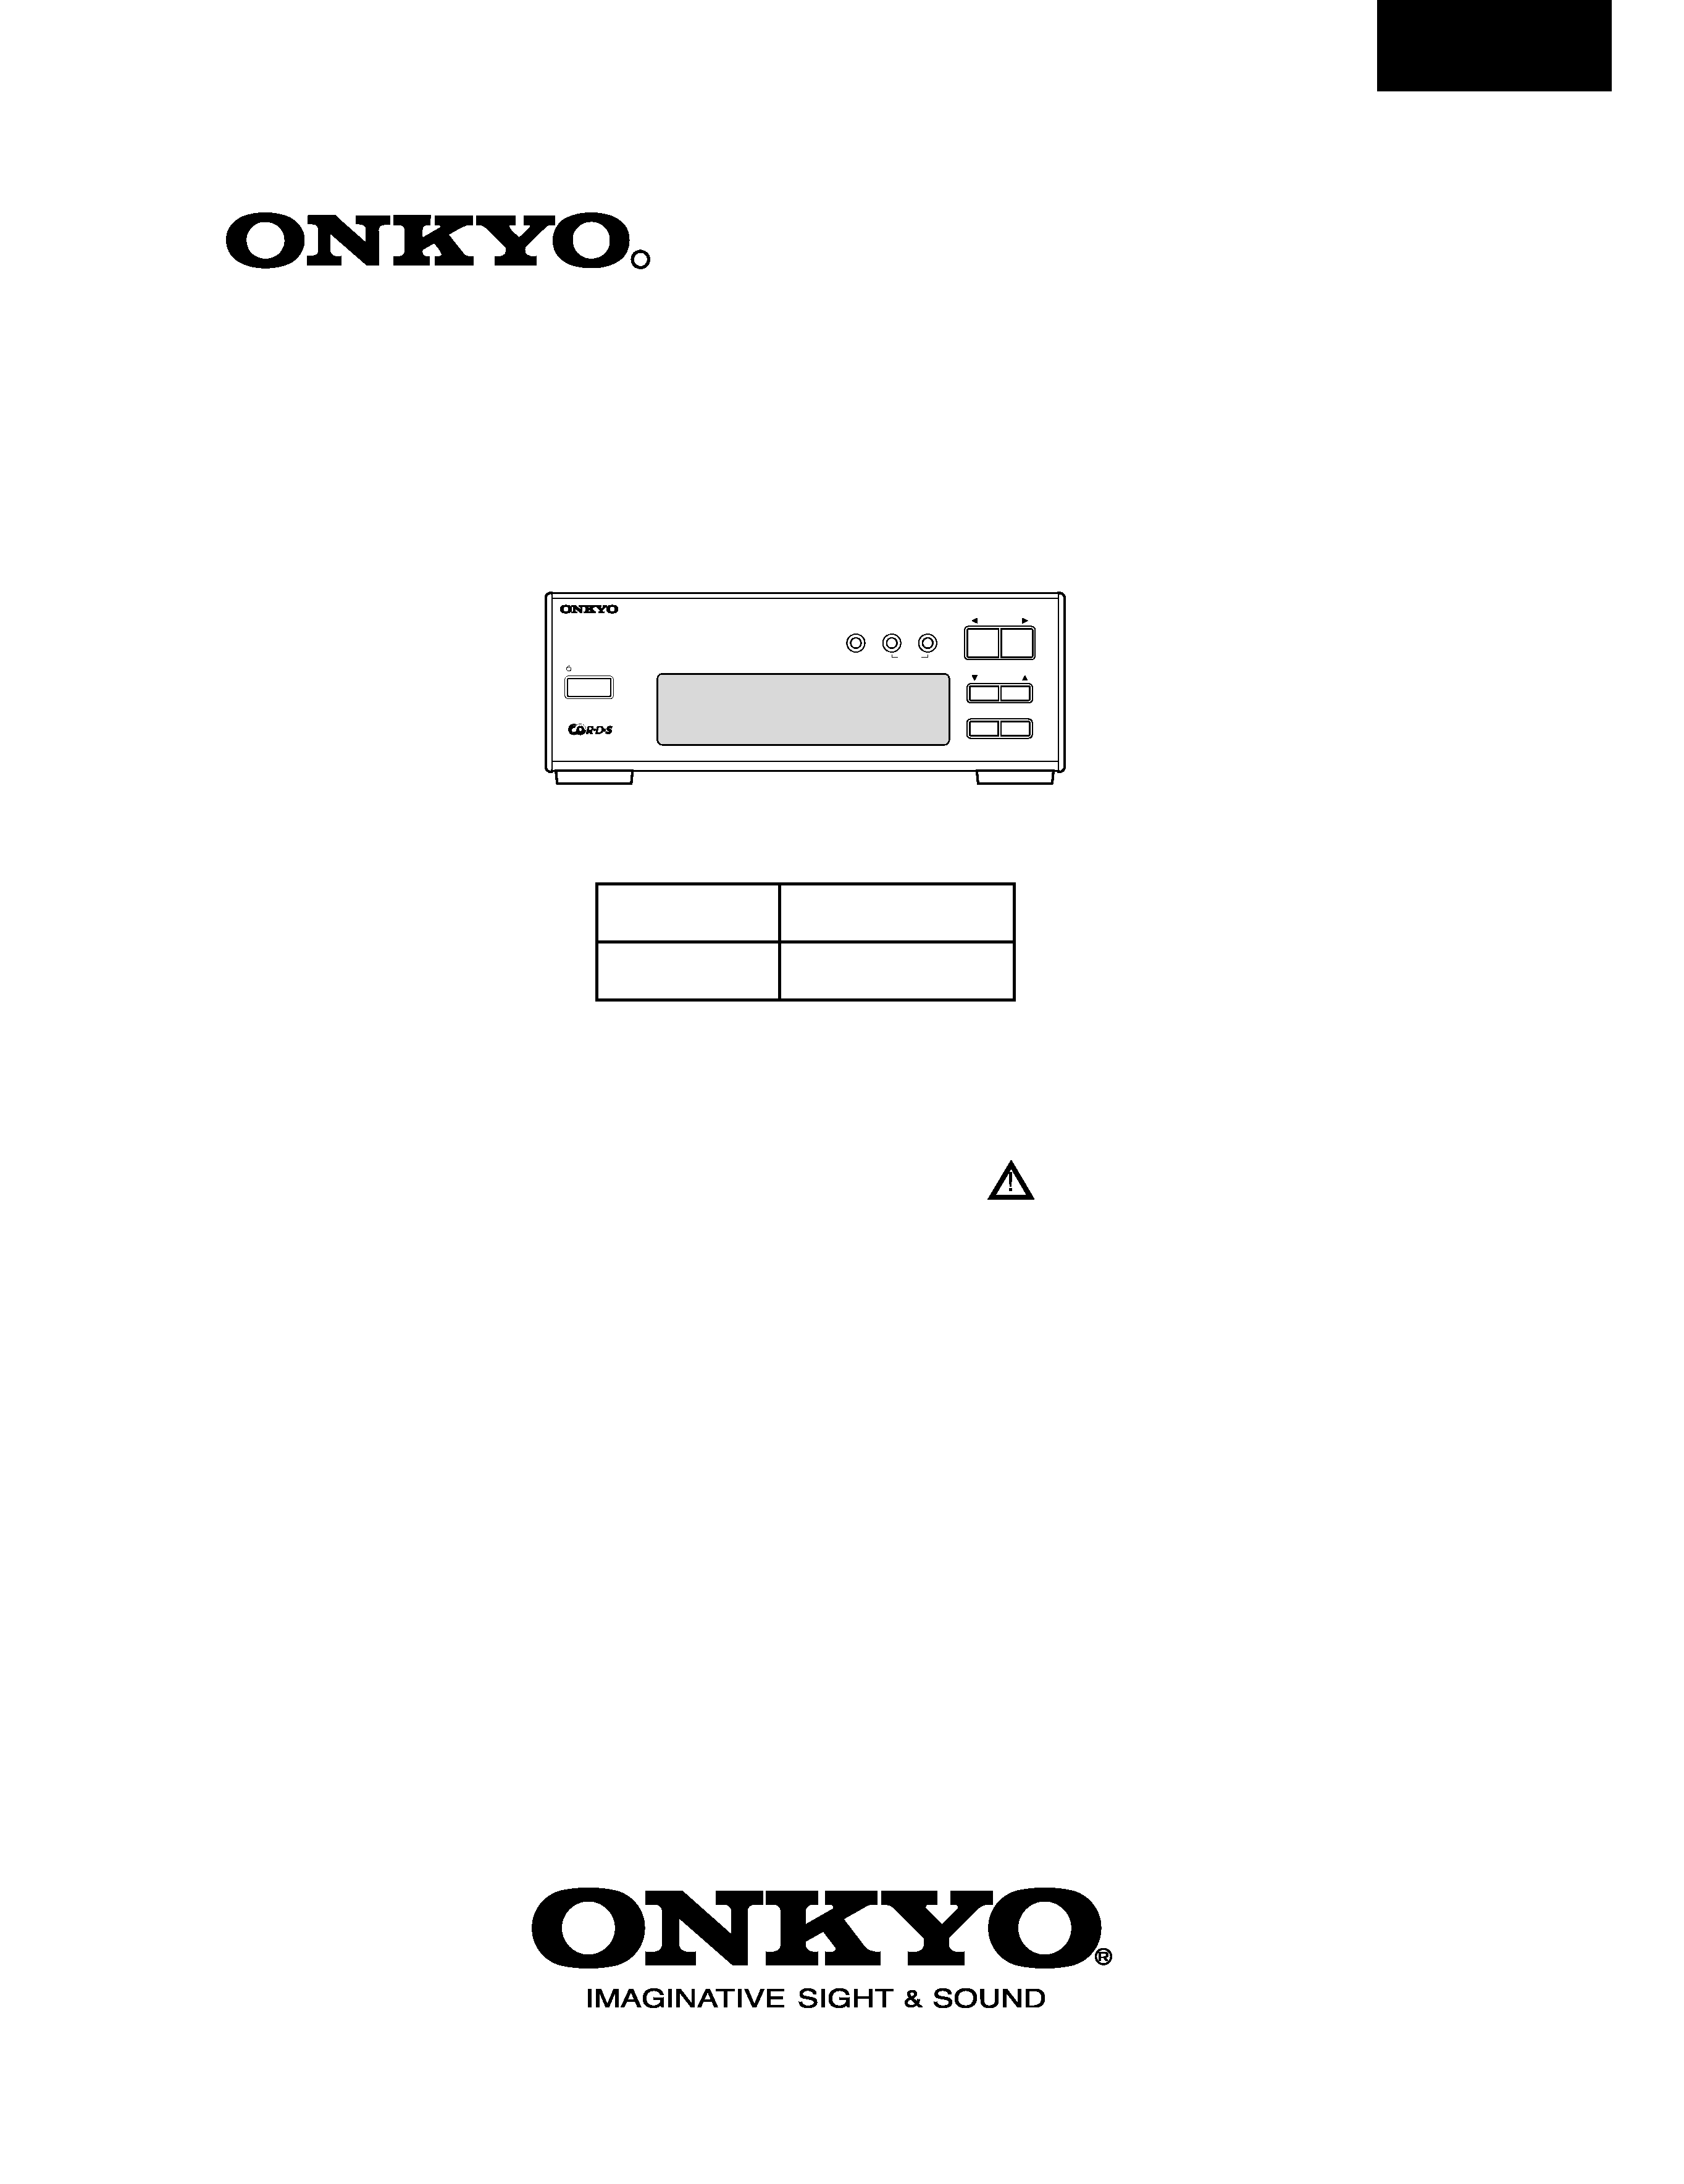 service manual for onkyo t-405tx